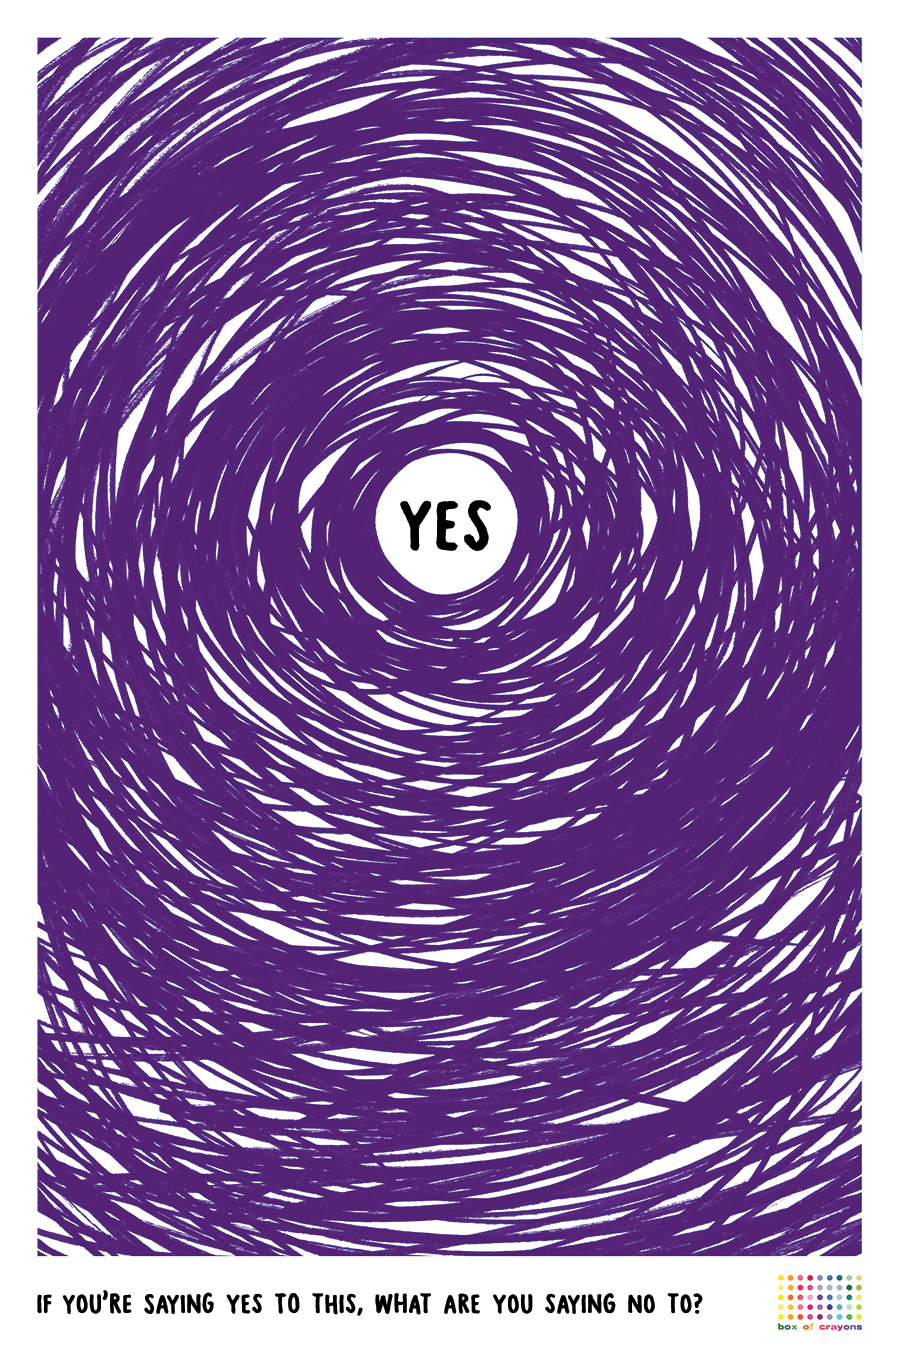 6 What are you saying Yes to